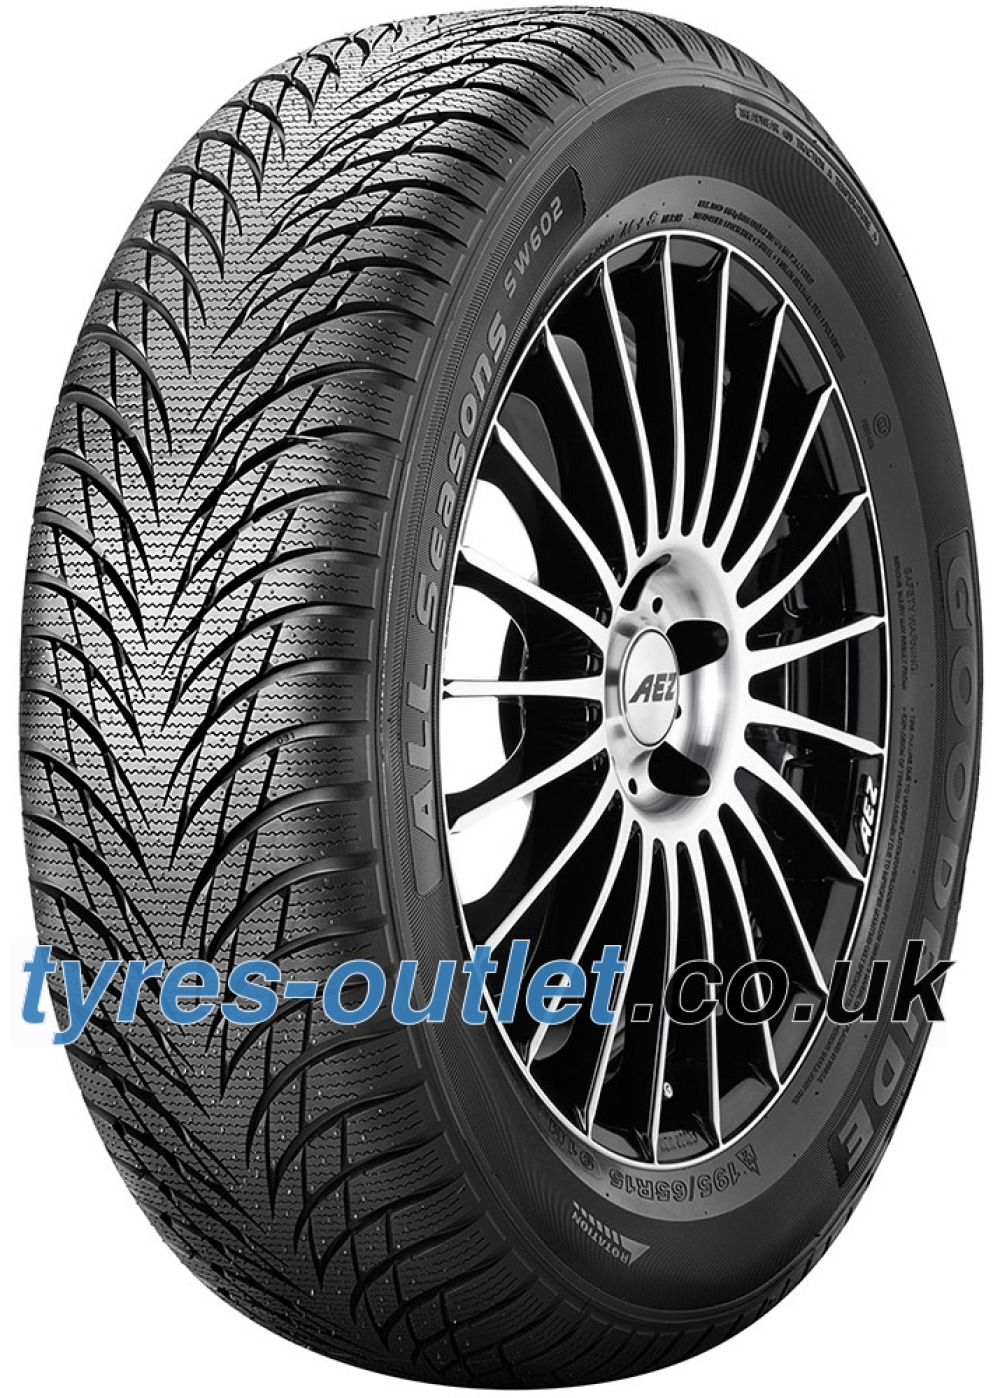 37f8d7bd0 Goodride SW602 All Seasons 195 60 R15 88H - tyres-outlet.co.uk